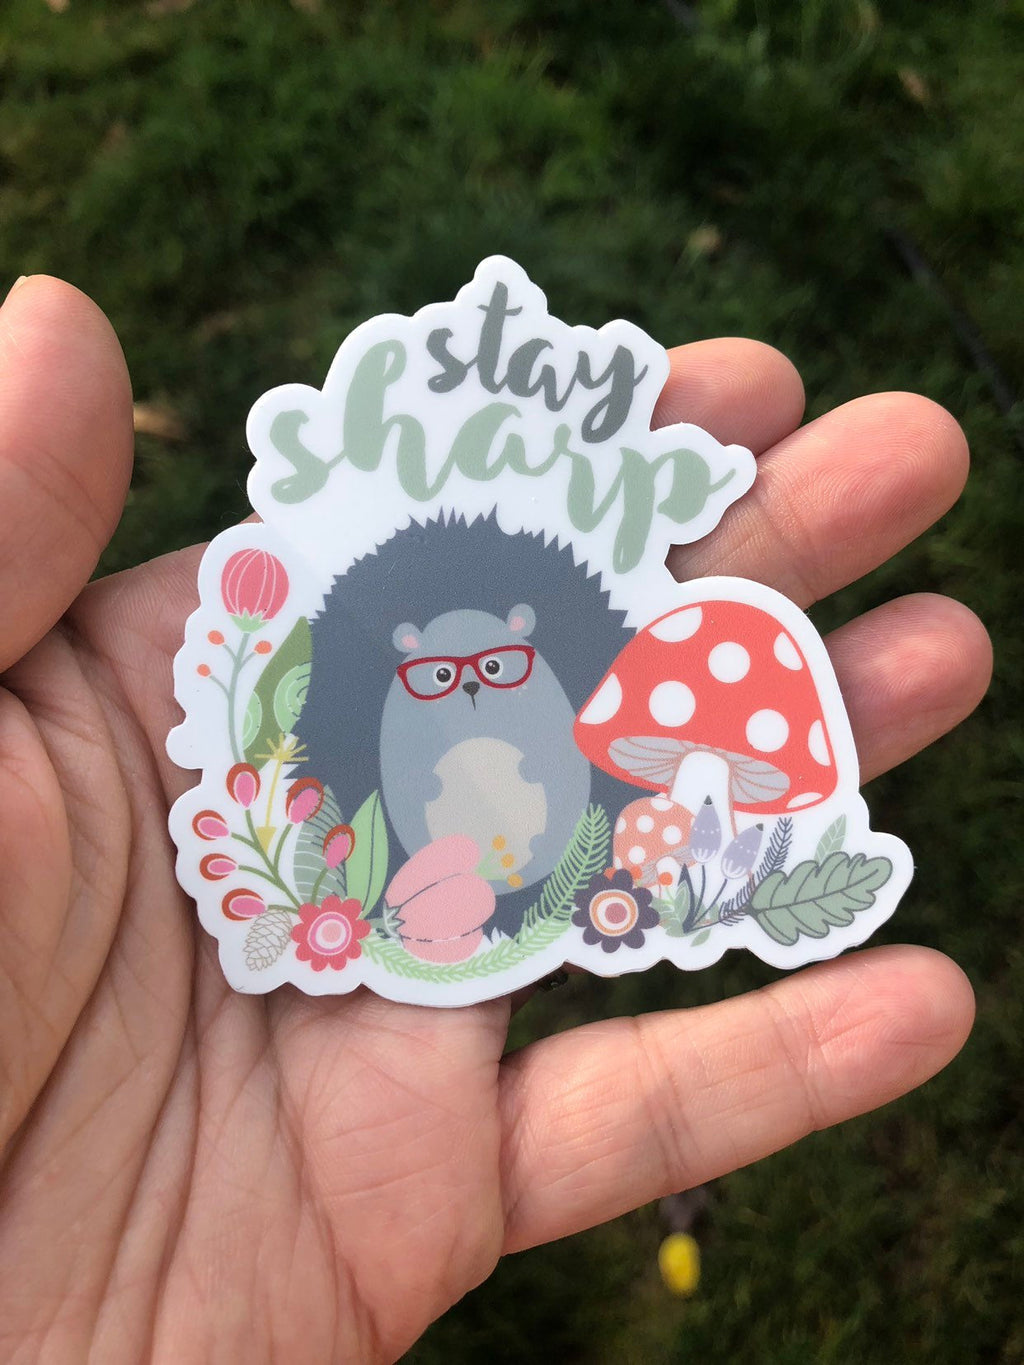 Stay Sharp hedgehog sticker